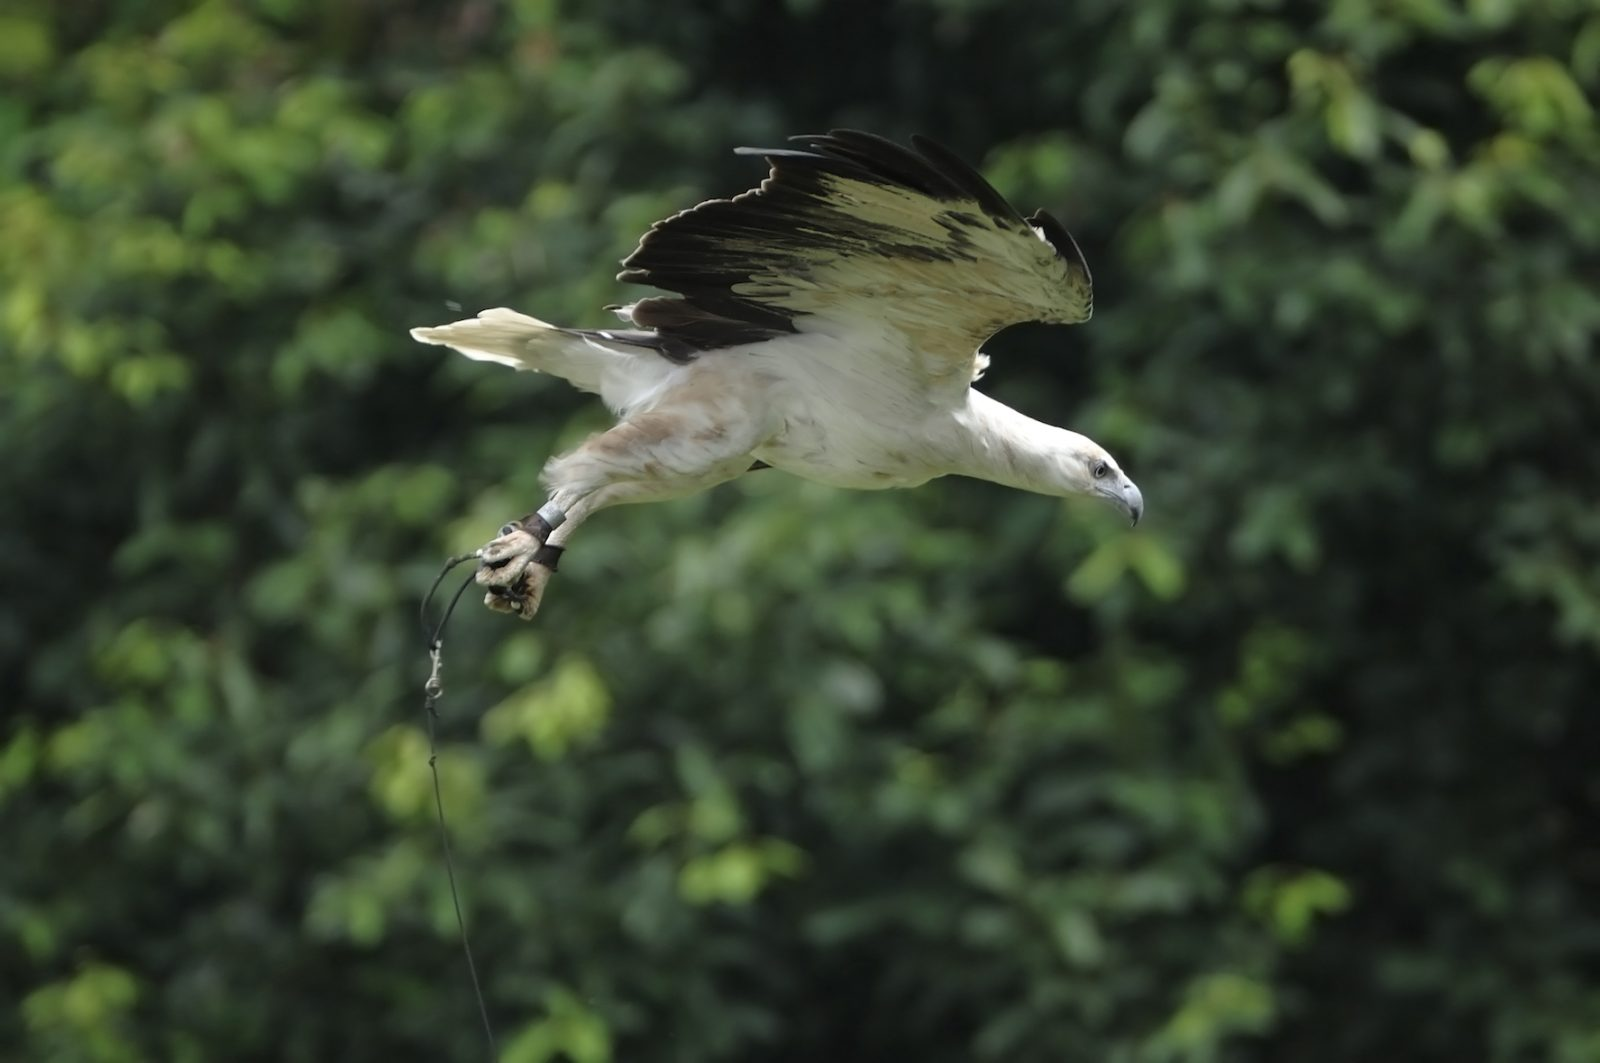 Birds of prey in Jurong Bird Park